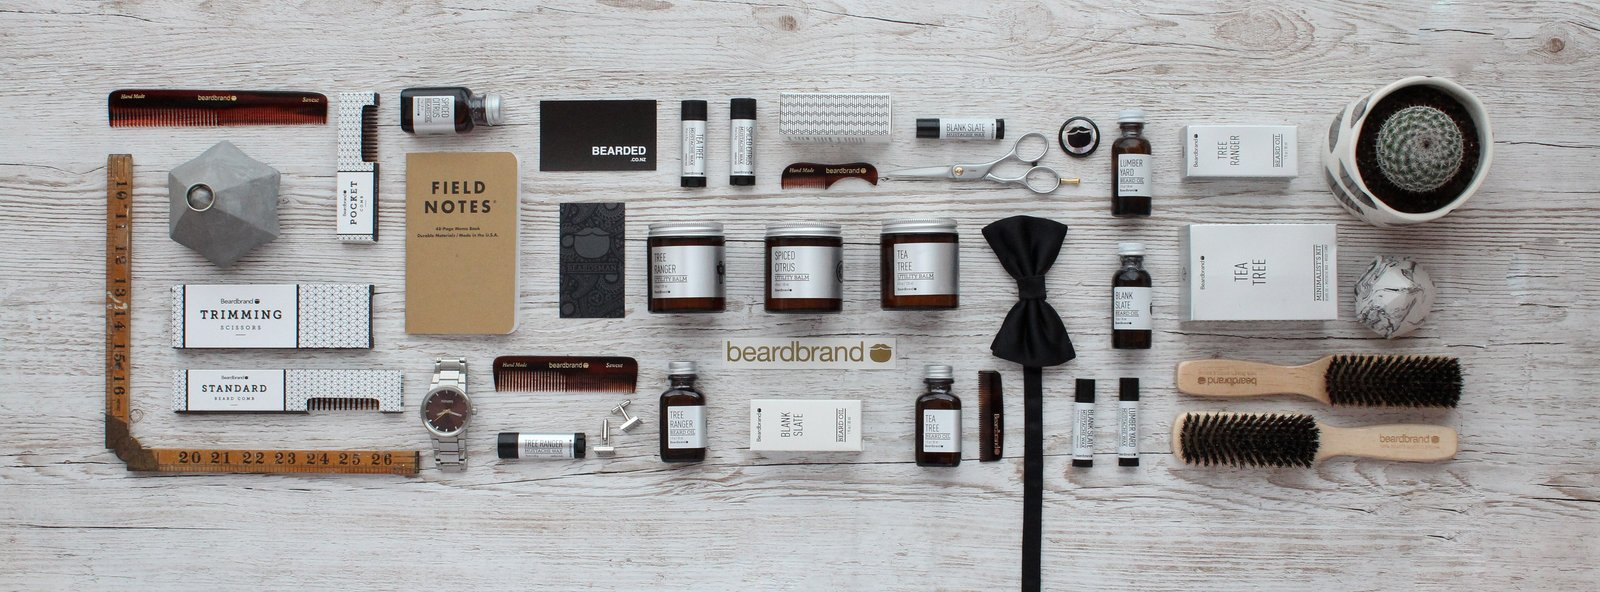 Beardbrand products